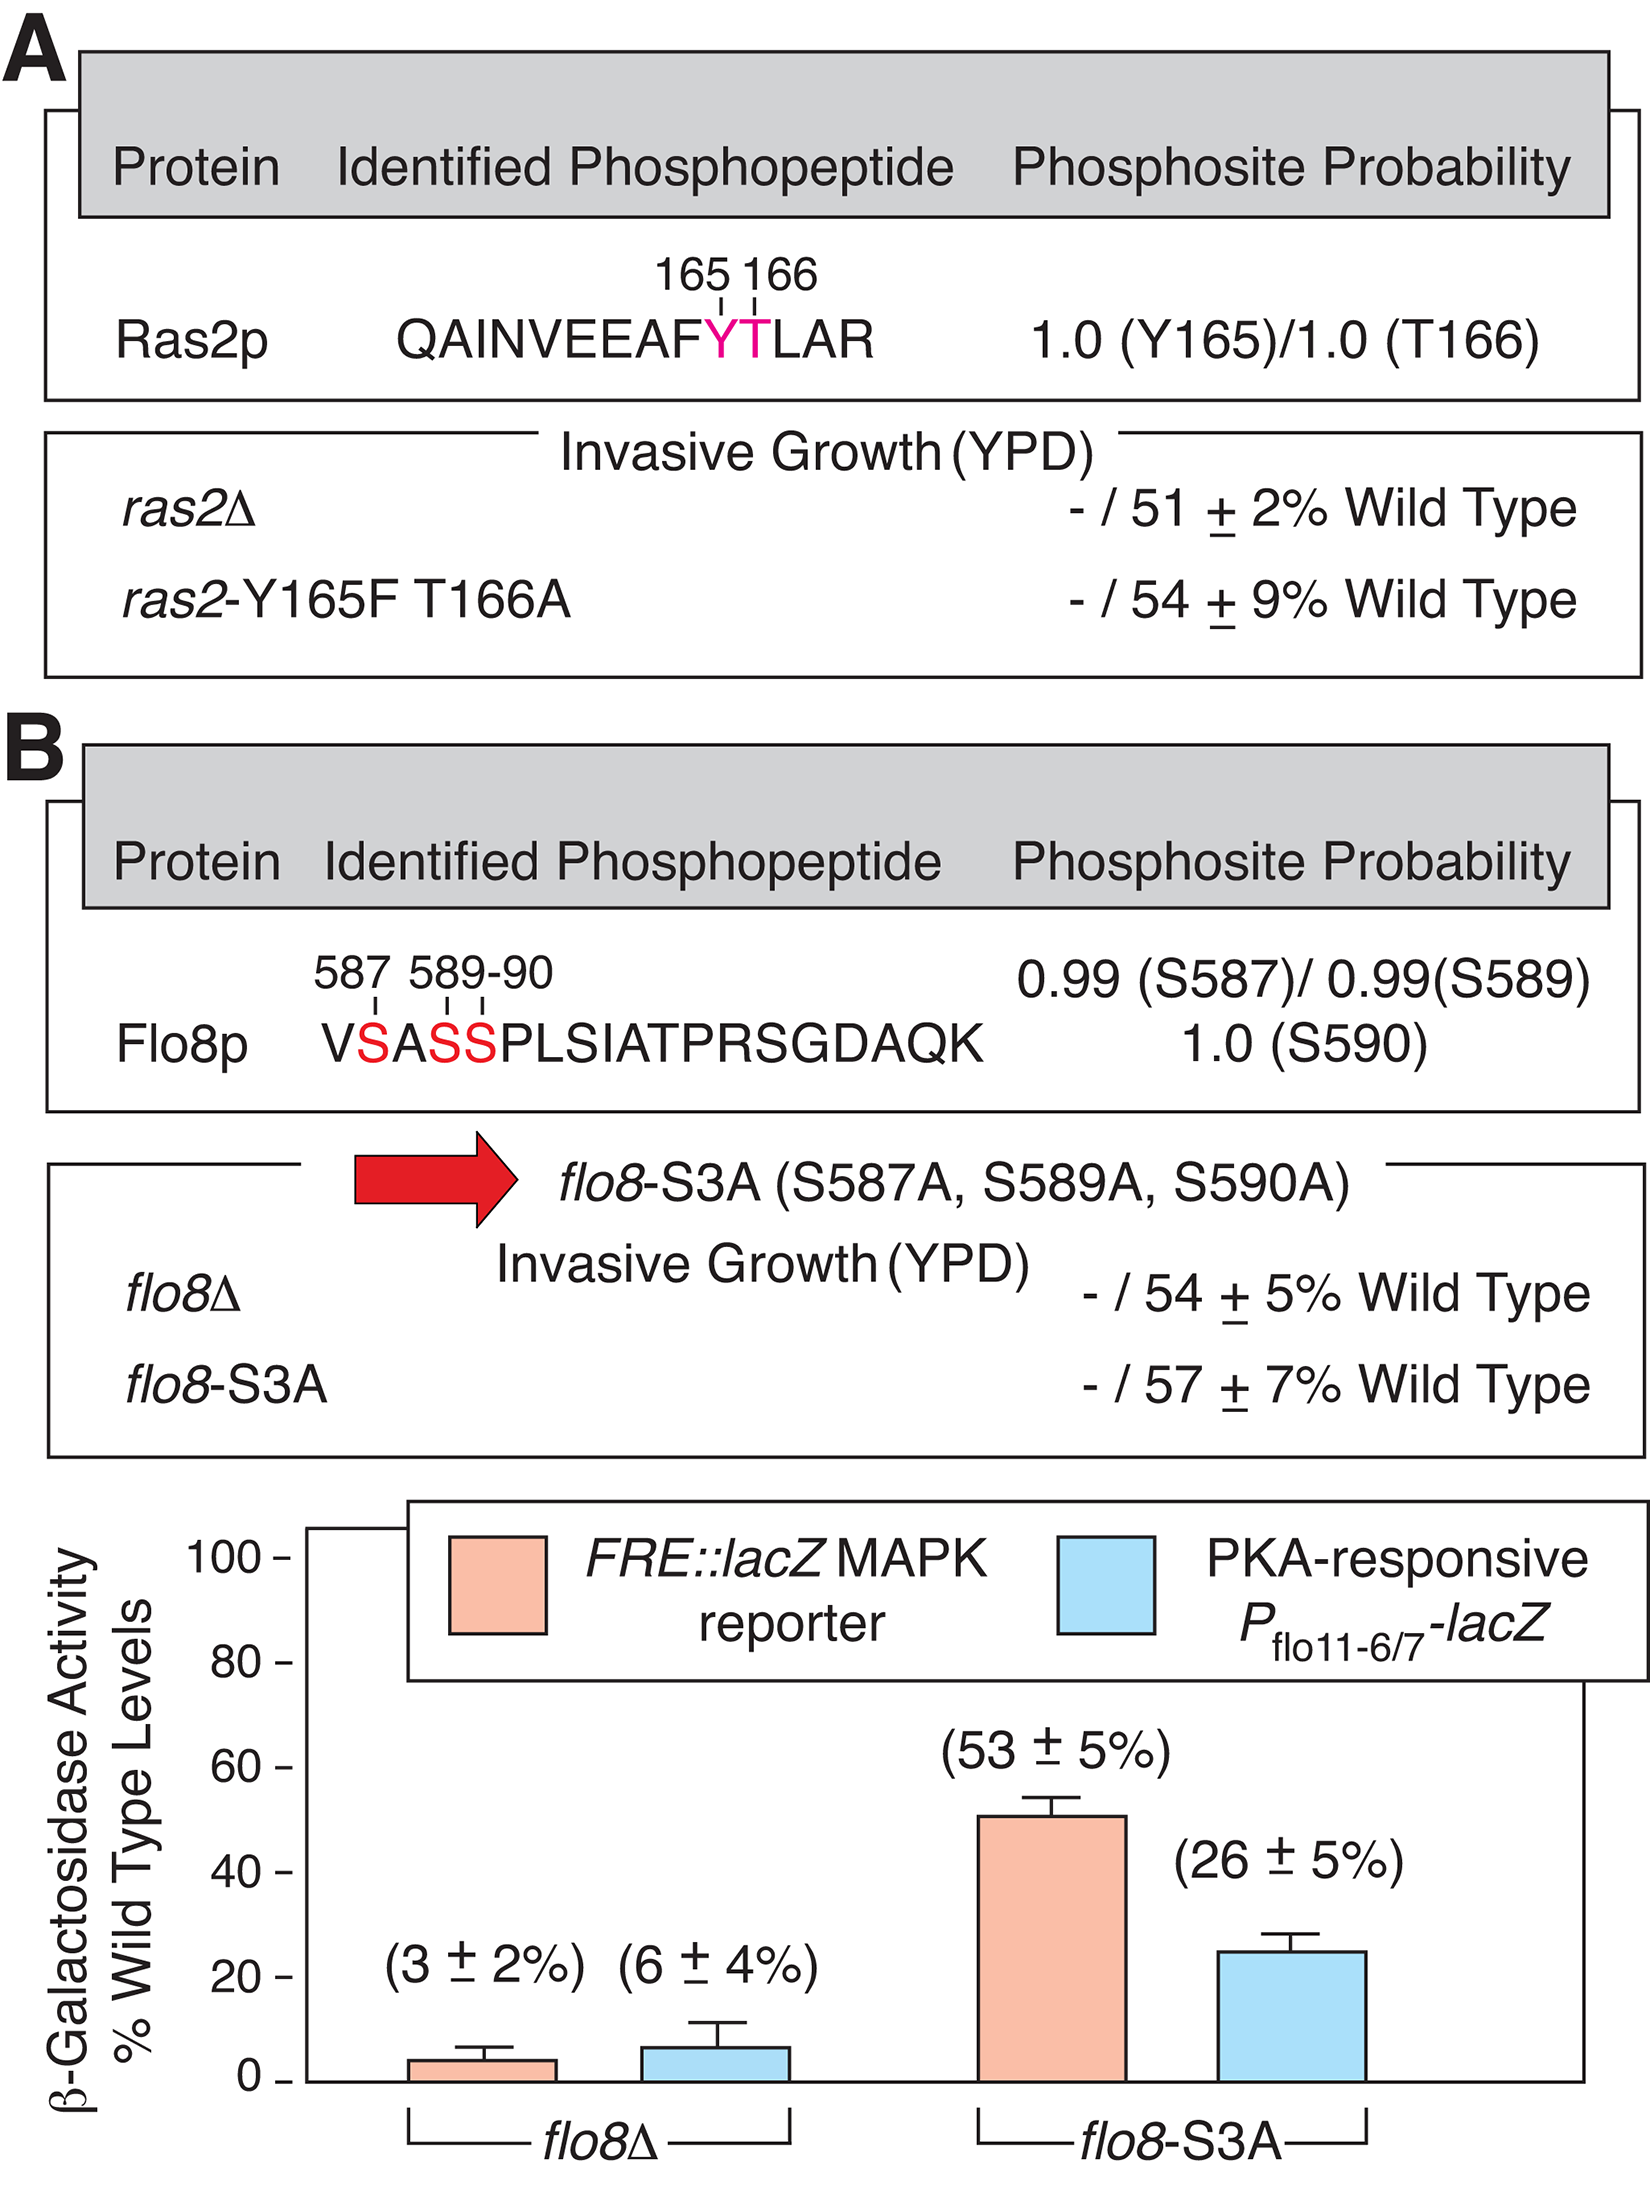 Newly identified phosphorylation sites in Ras2p and Flo8p are required for wild-type yeast invasive growth.